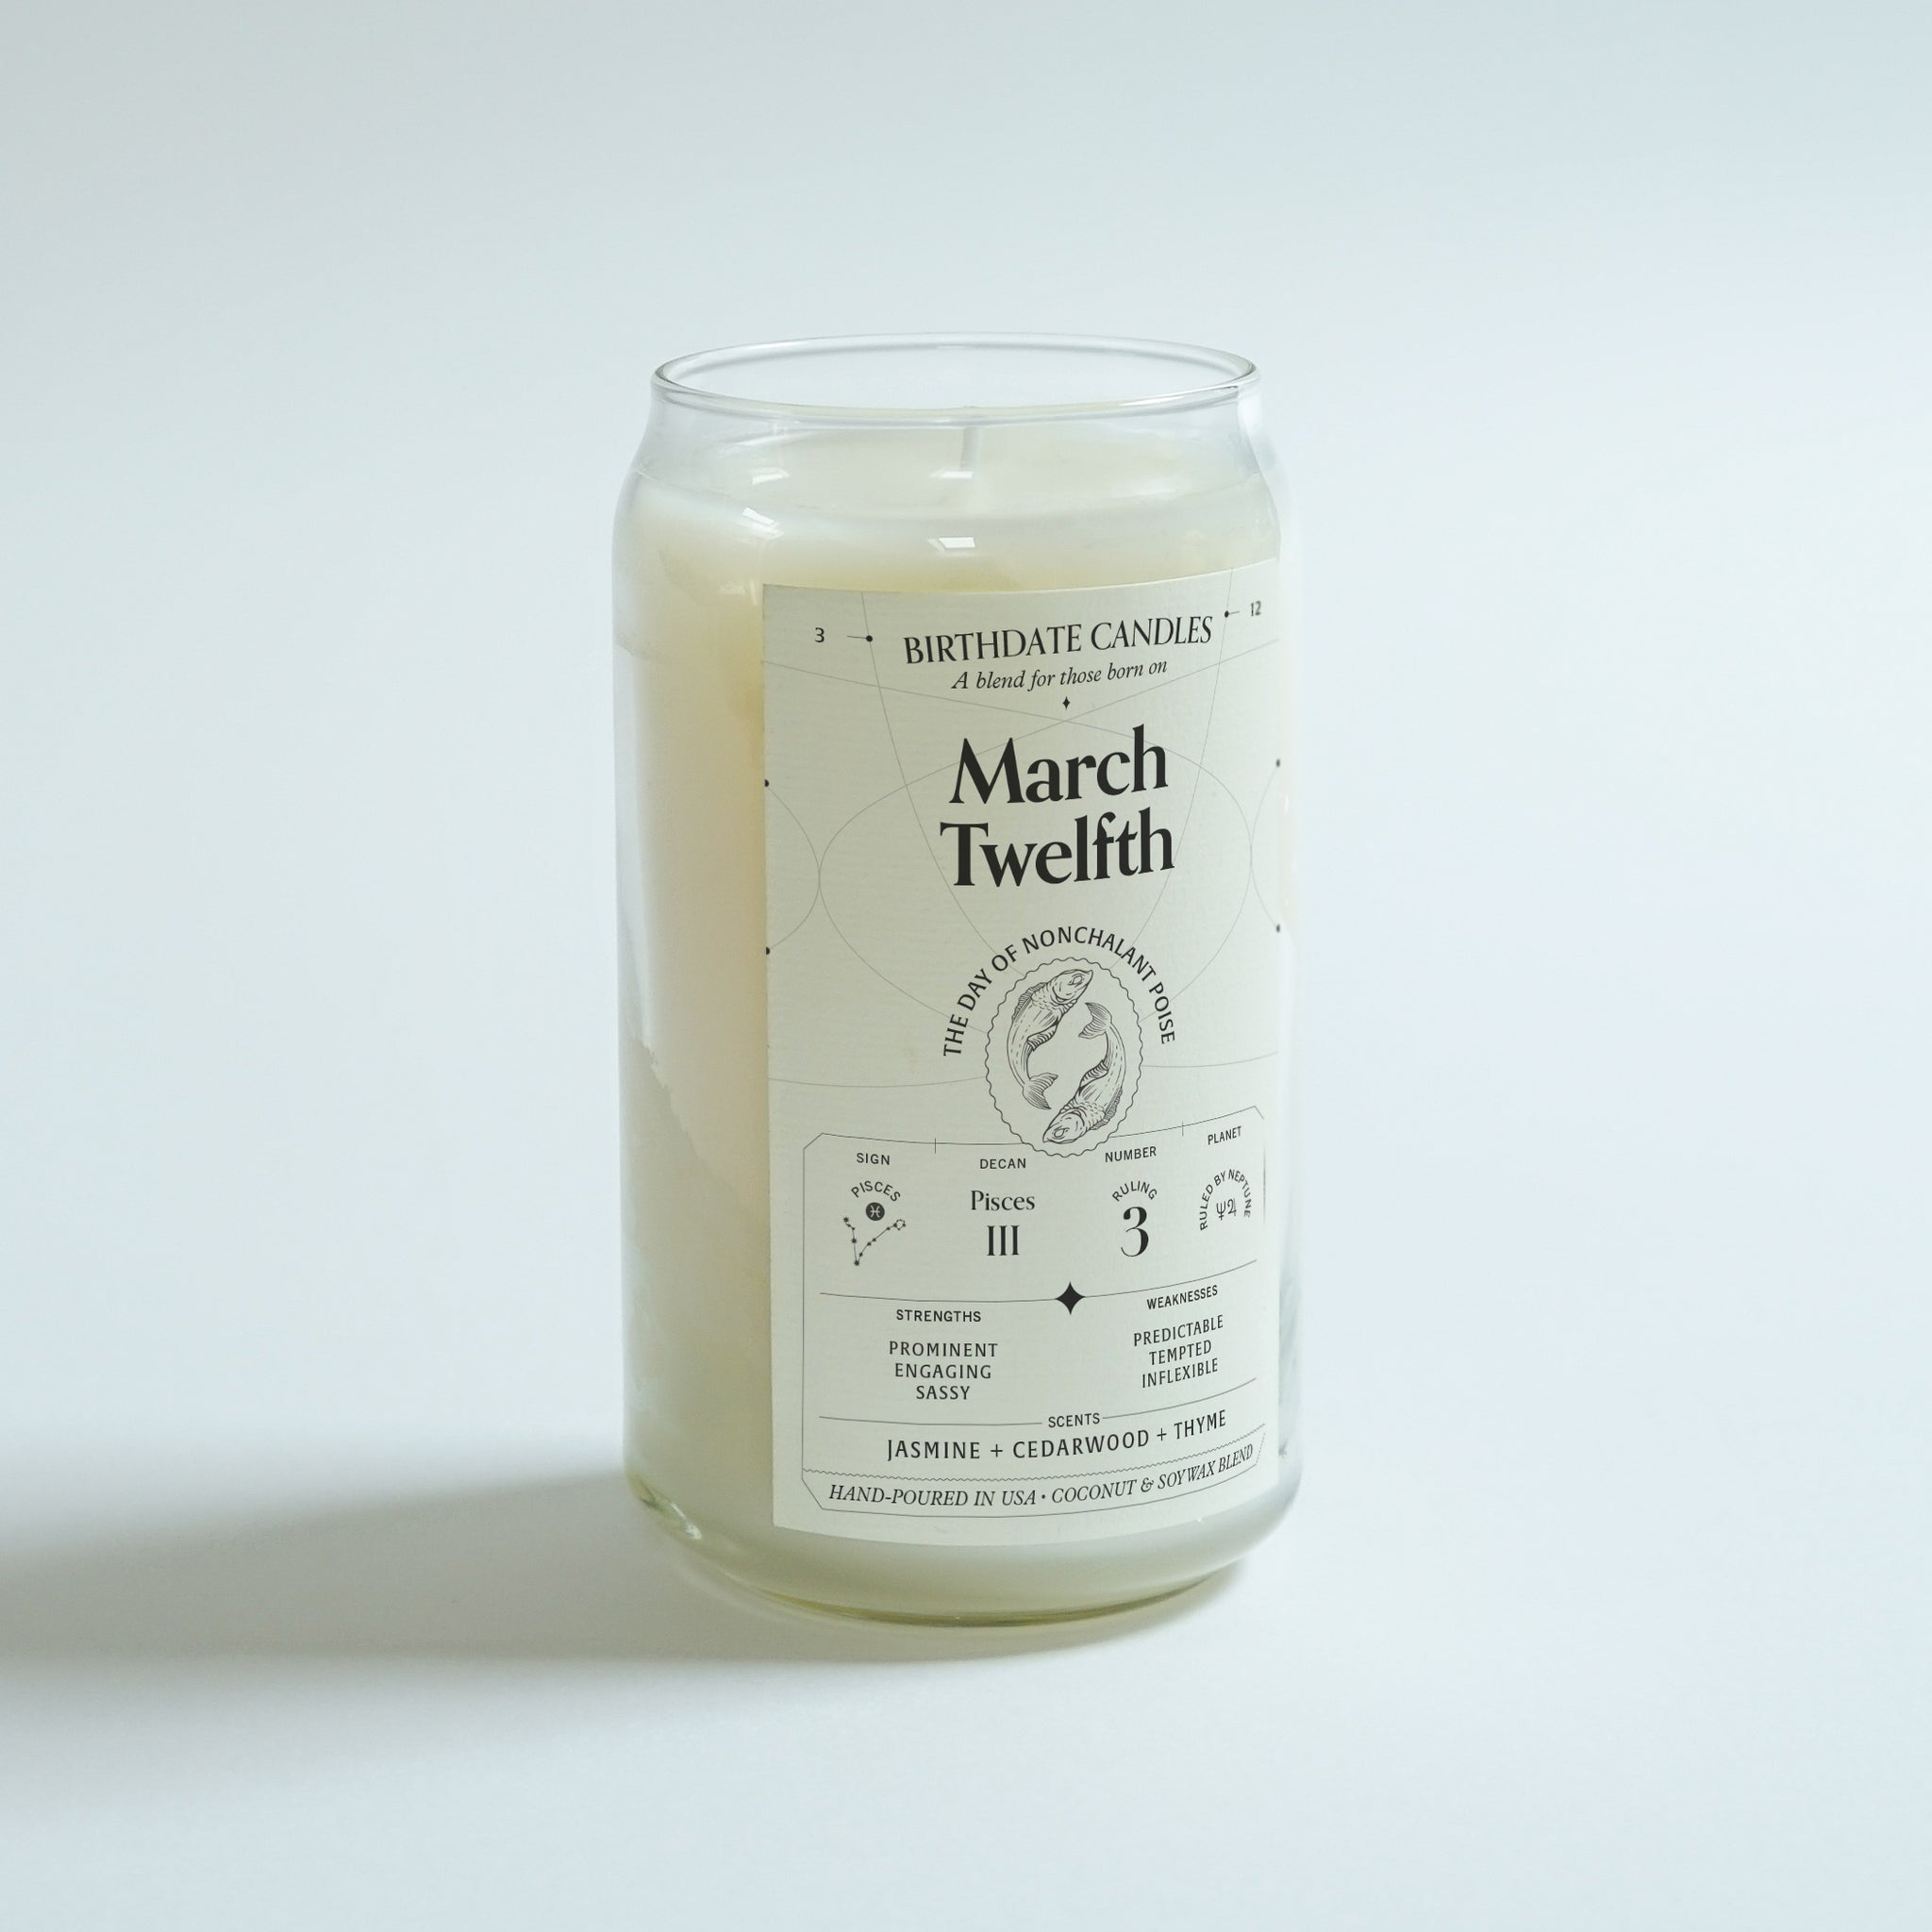 The March Twelfth Birthday Candle